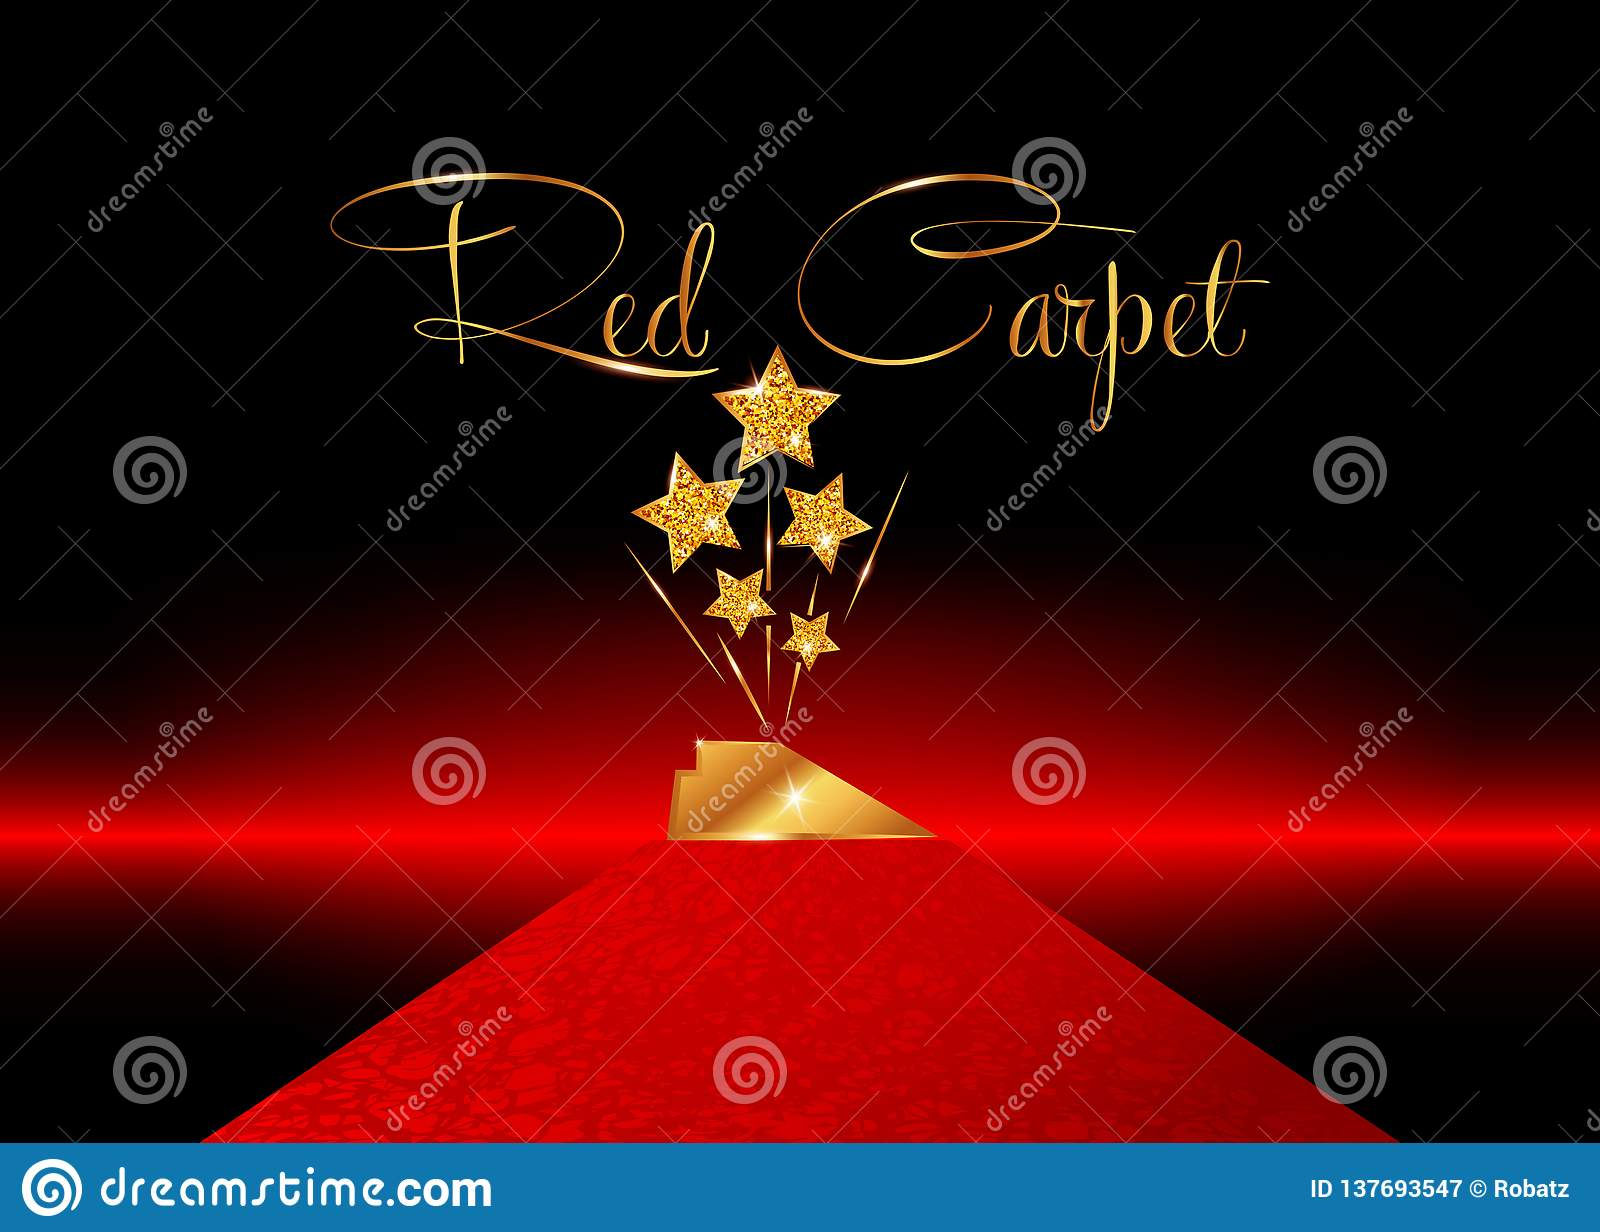 HOLLYWOOD Movie PARTY Gold STAR AWARD Statue Prize Giving Ceremony Red Carpet and Golden stars prize concept, Glittering style